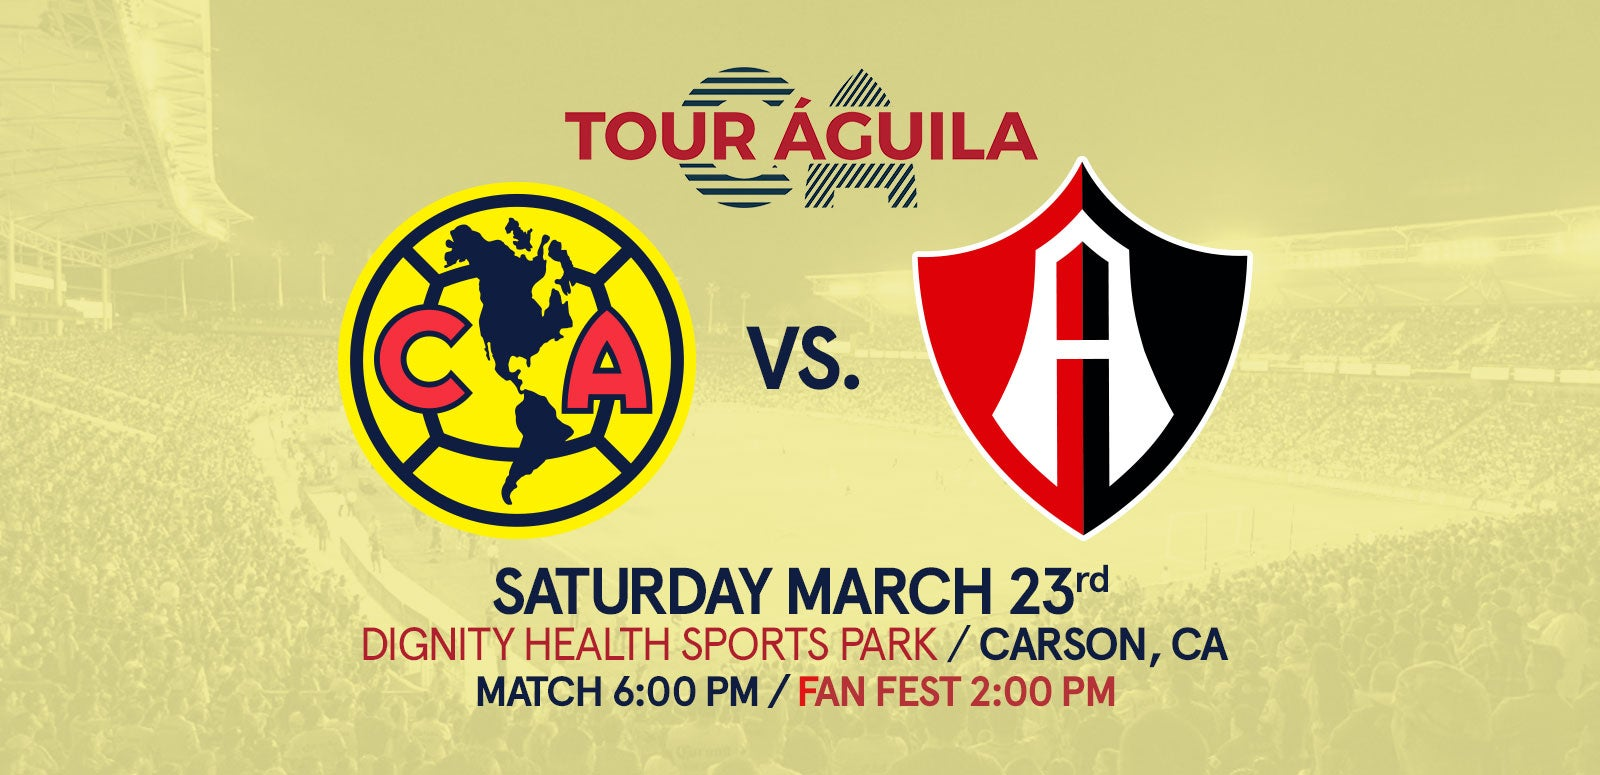 5af4a24c3 More Info for Tour Águila  Club America vs. Atlas